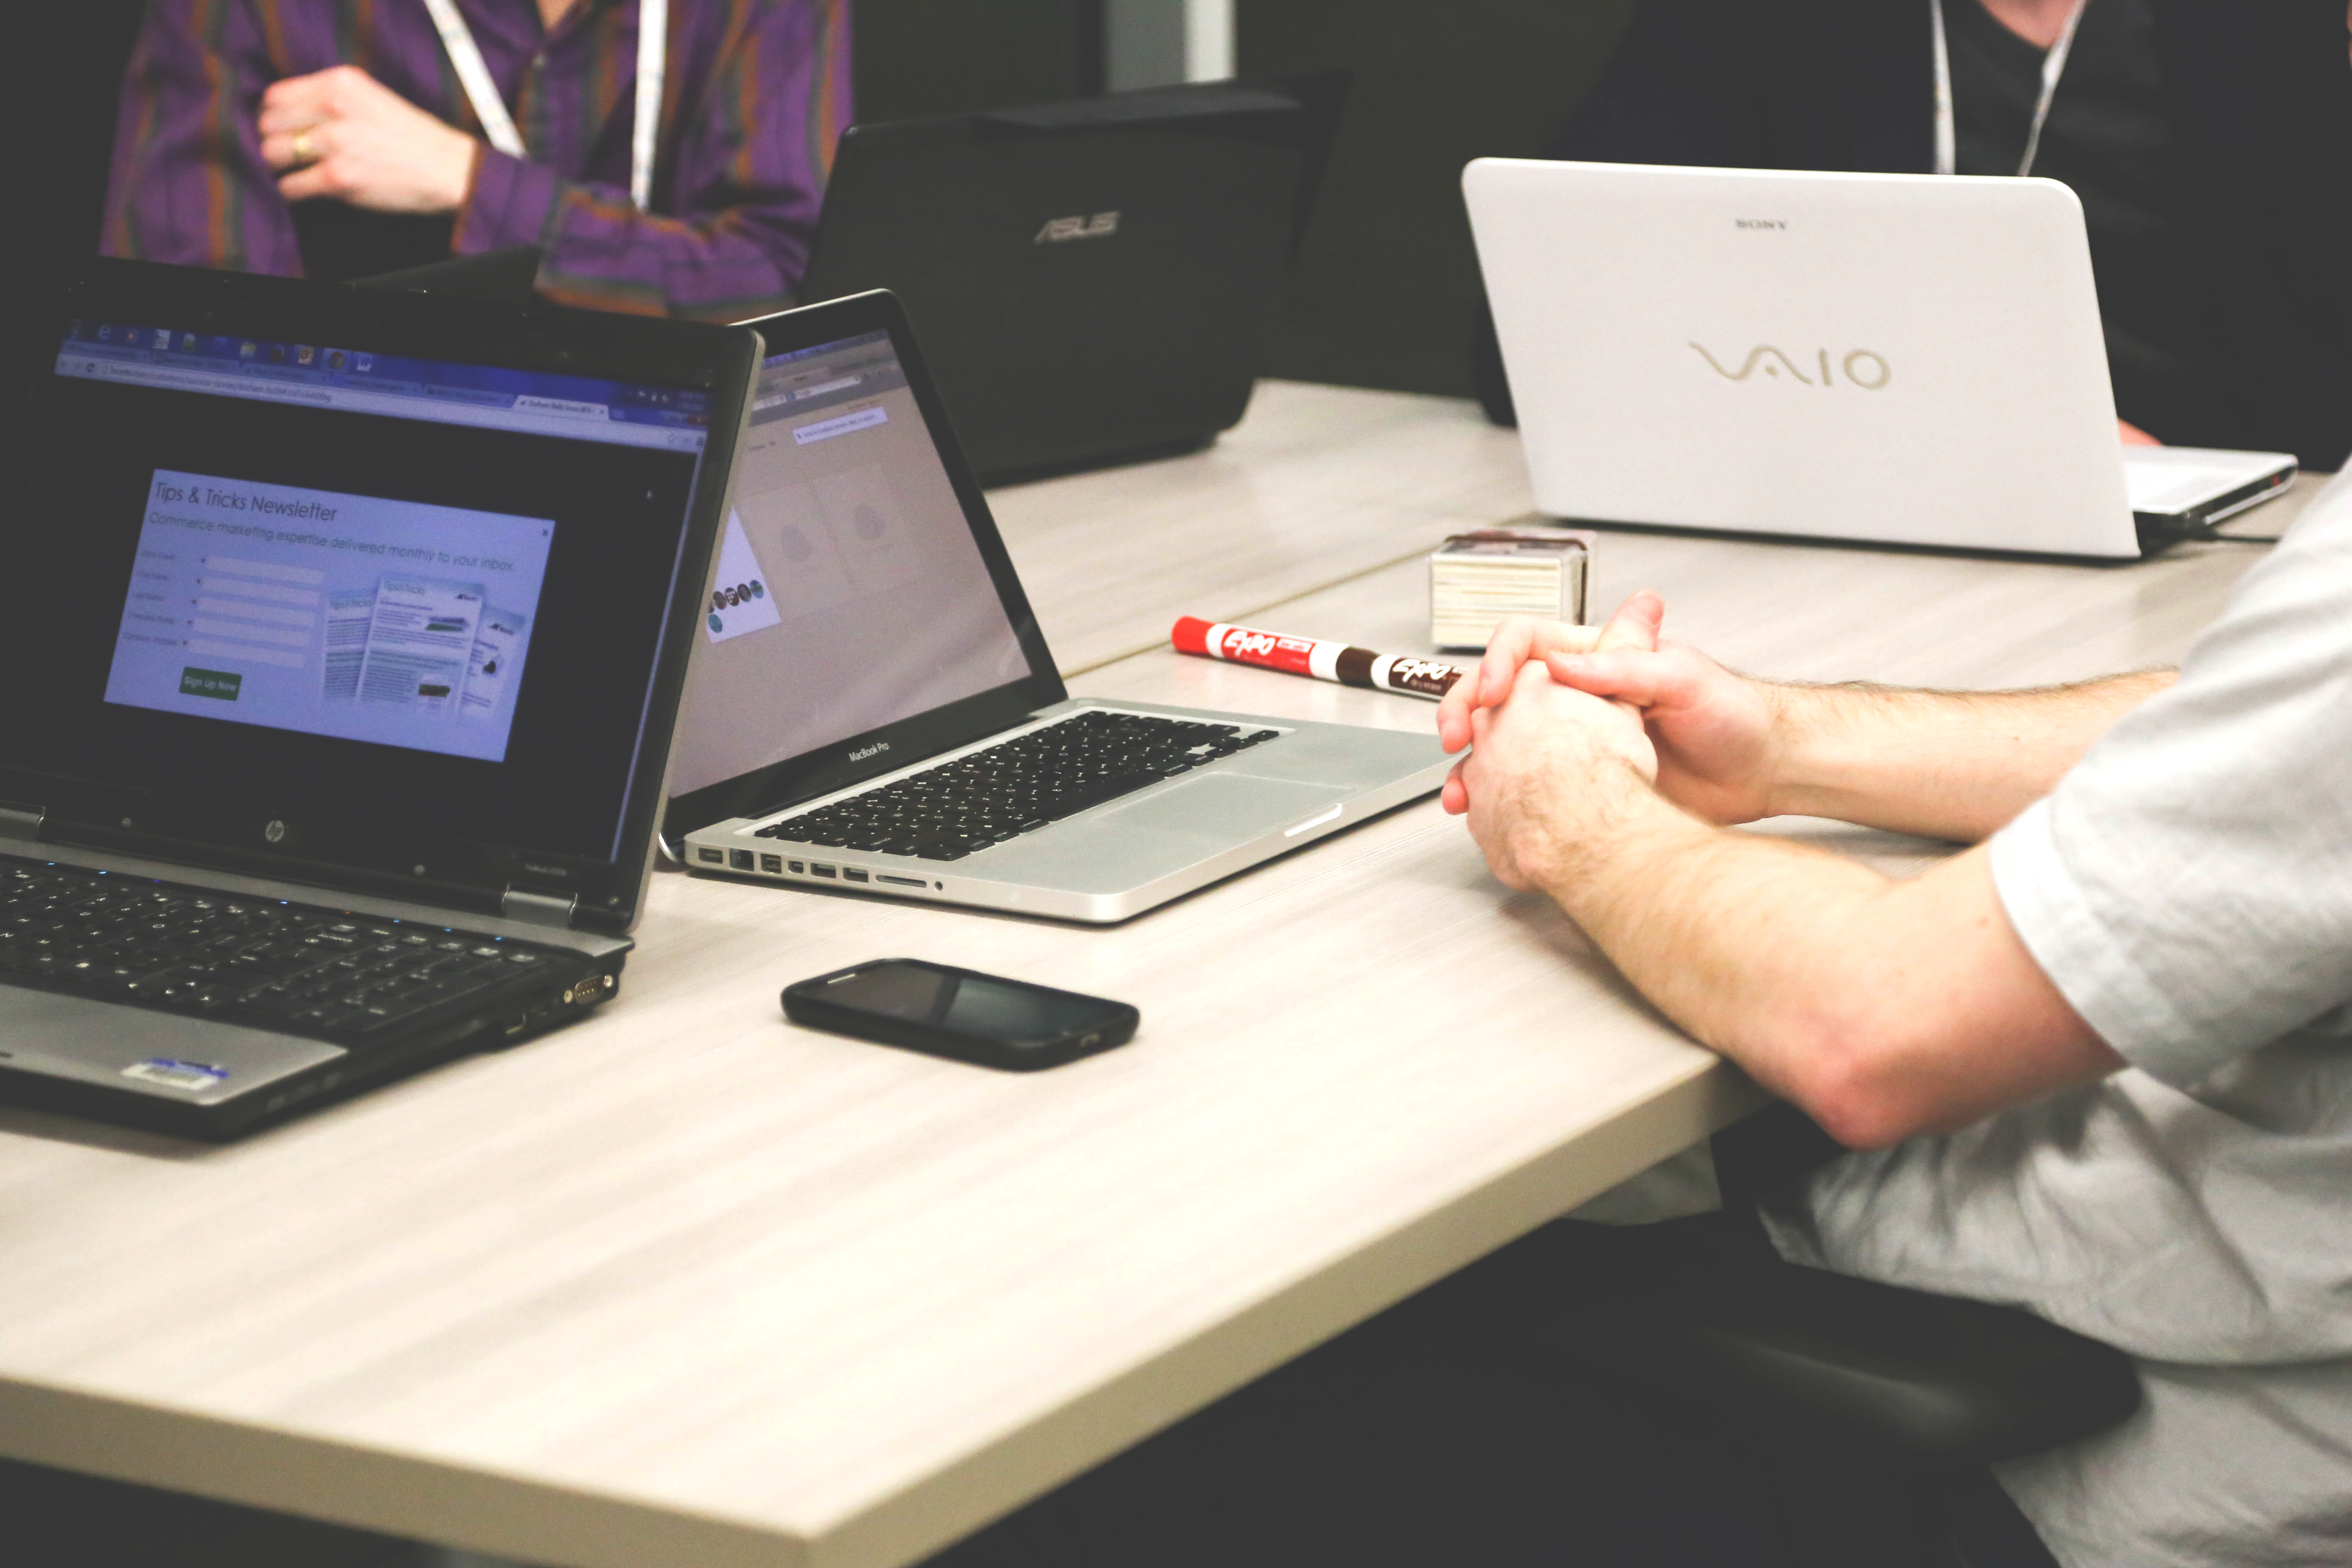 Should you do usability testing on a perfect design?